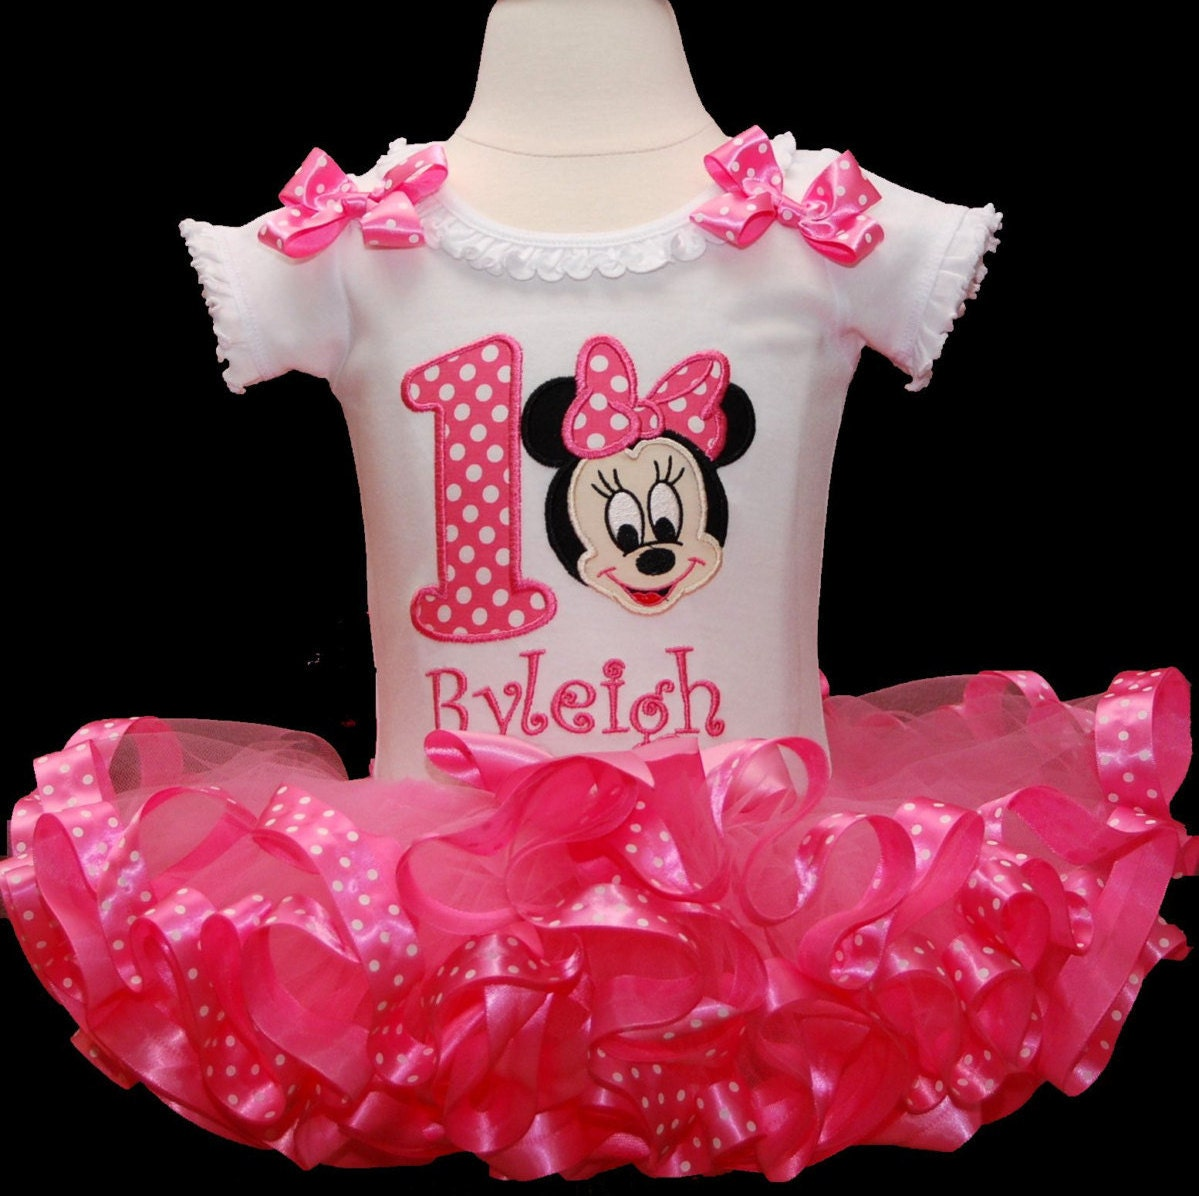 baby girl 1st birthday outfit,  Minnie Mouse 1st birthday outfit, smash cake outfit girl, Minnie Mouse first birthday outfit